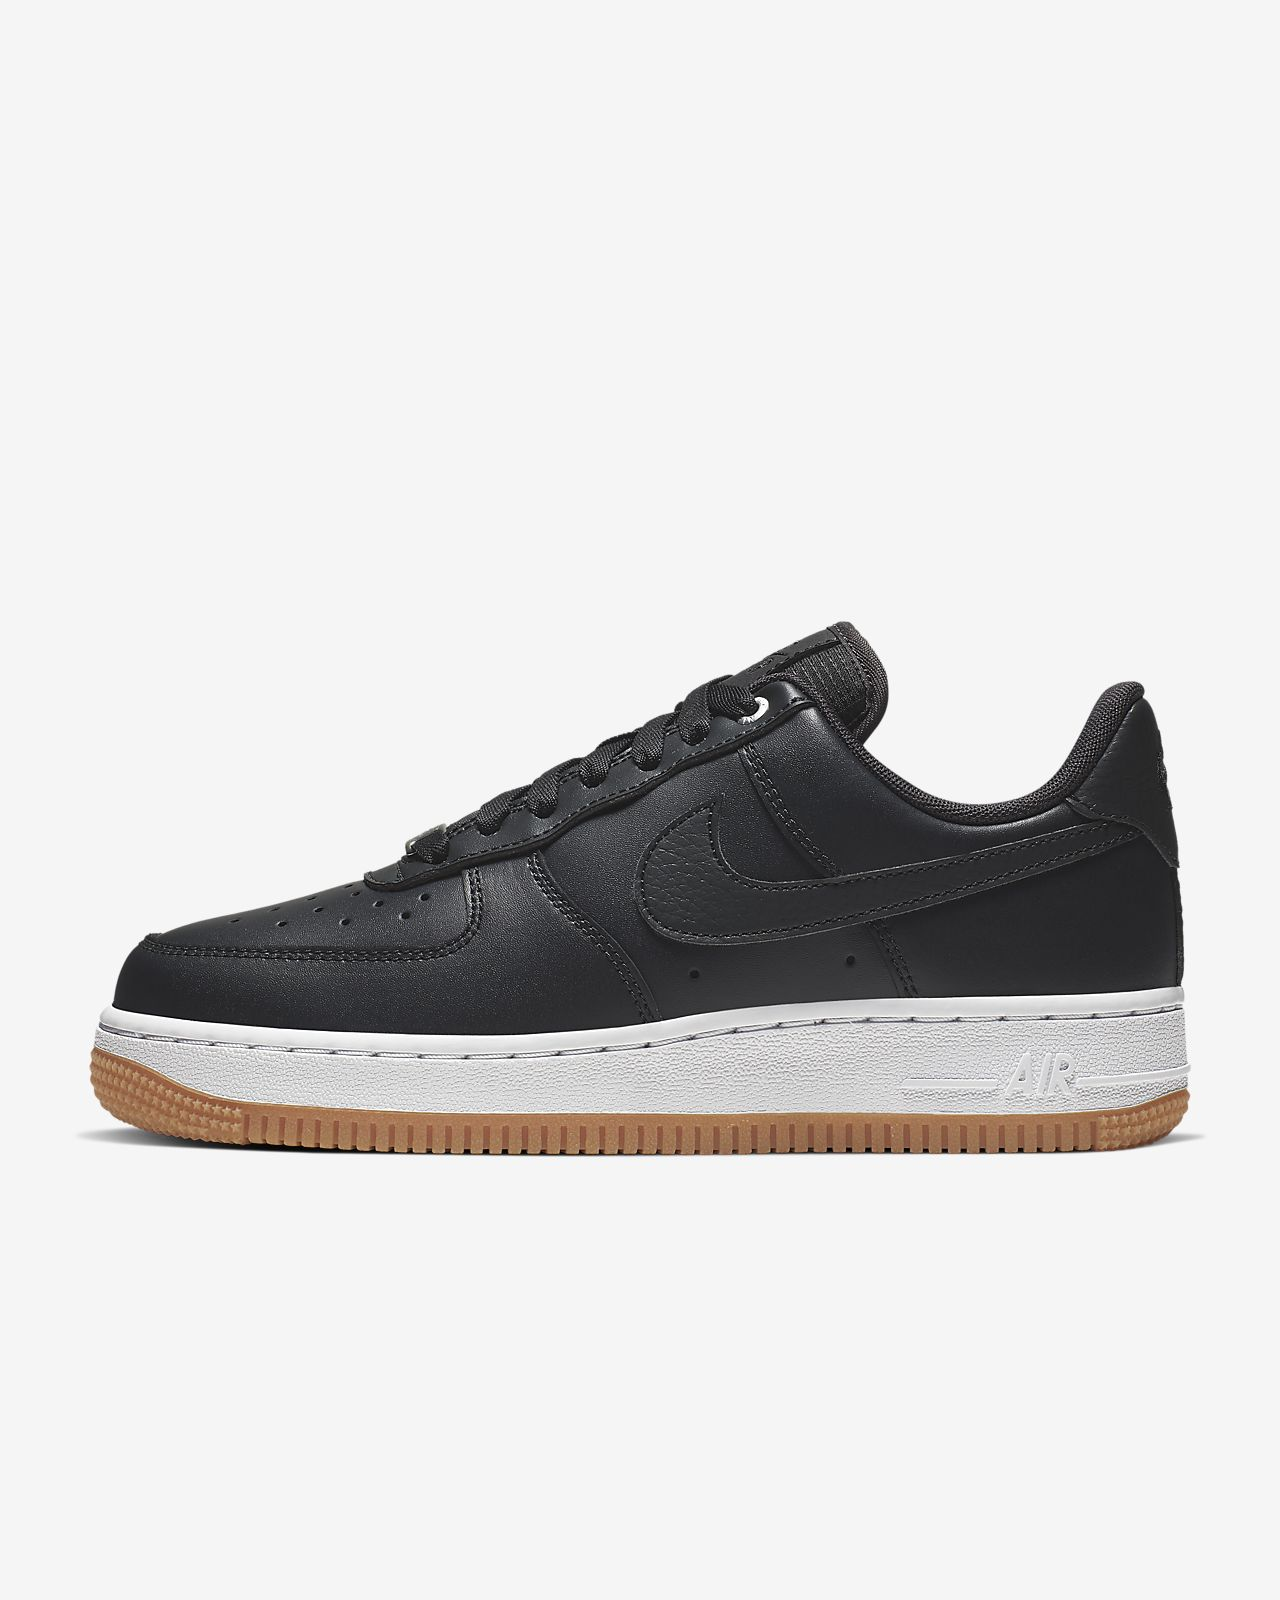 revendeur 68a47 6817a Nike Air Force 1 '07 Low Premium Women's Shoe